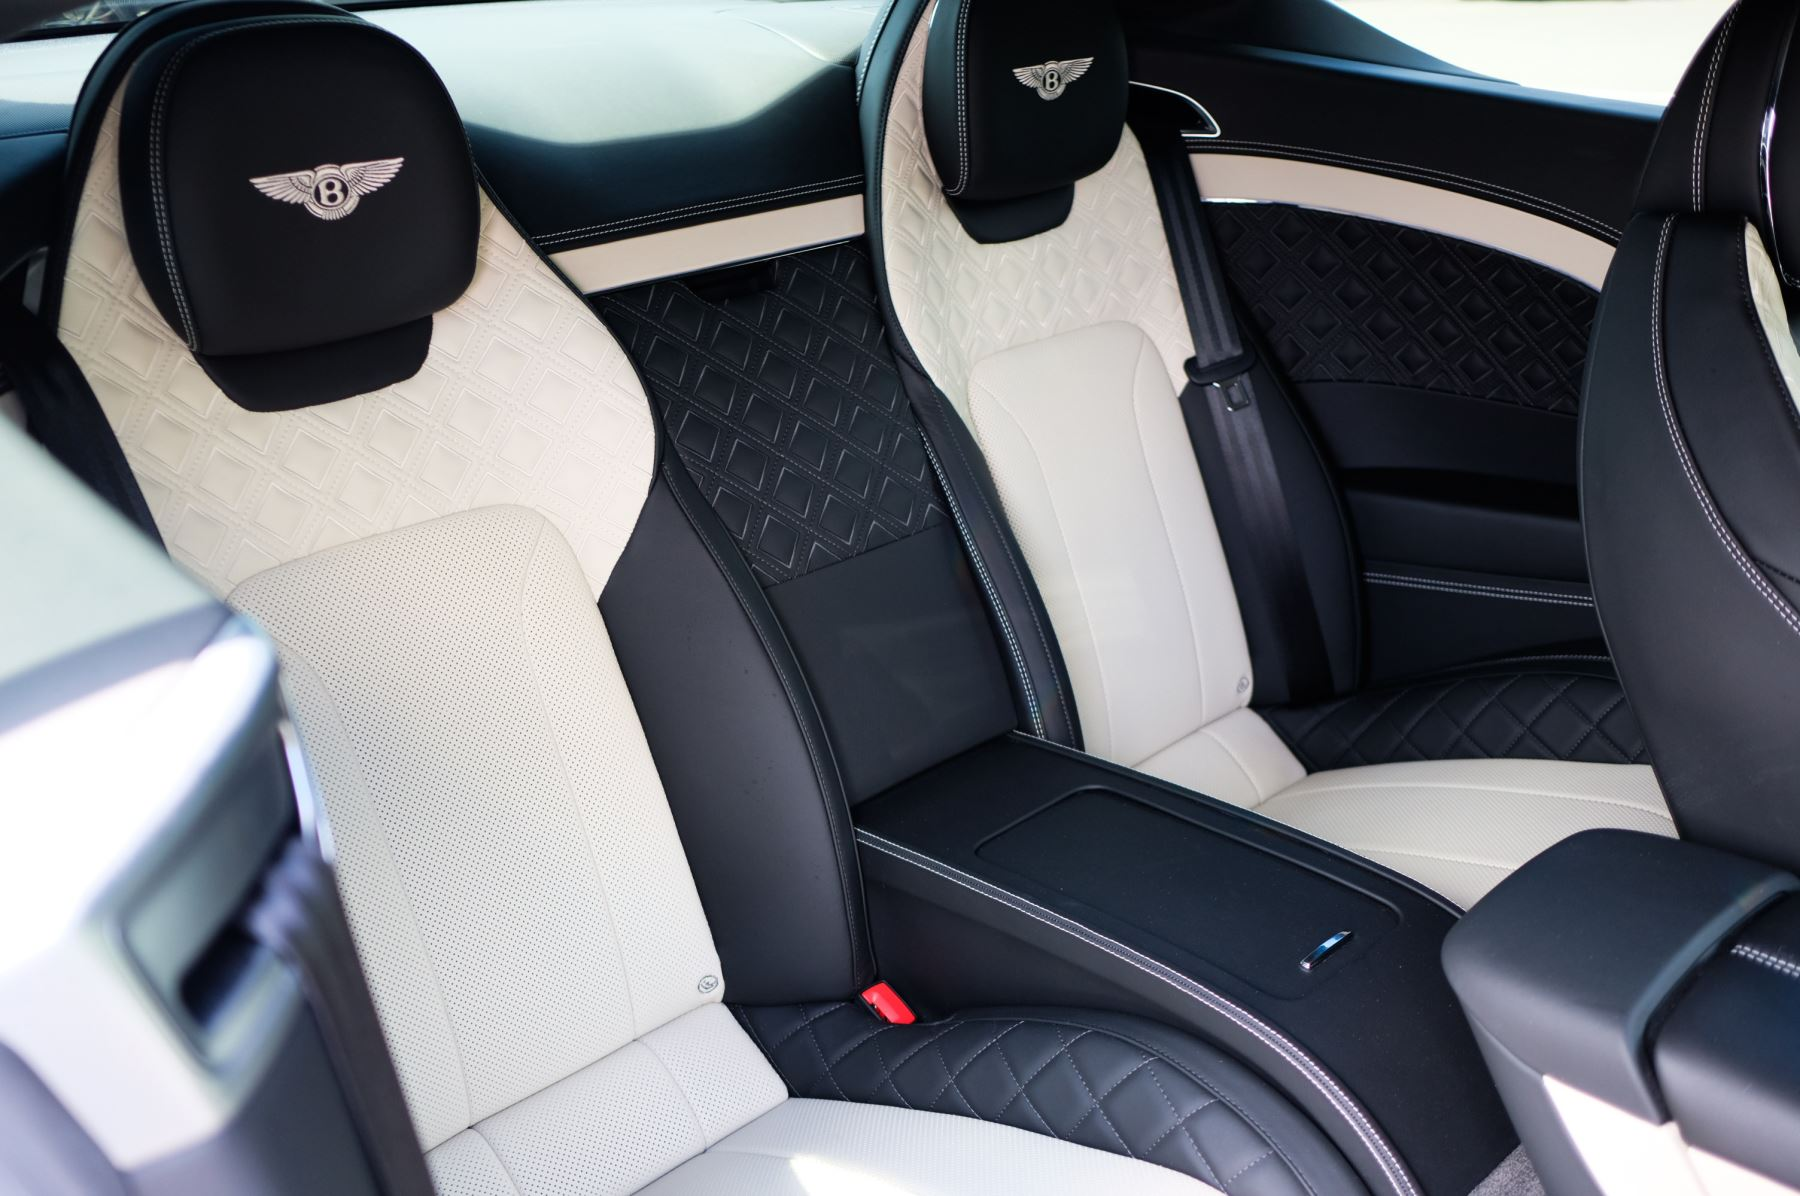 Bentley Continental GT 6.0 W12 - Mulliner Driving Specification image 13